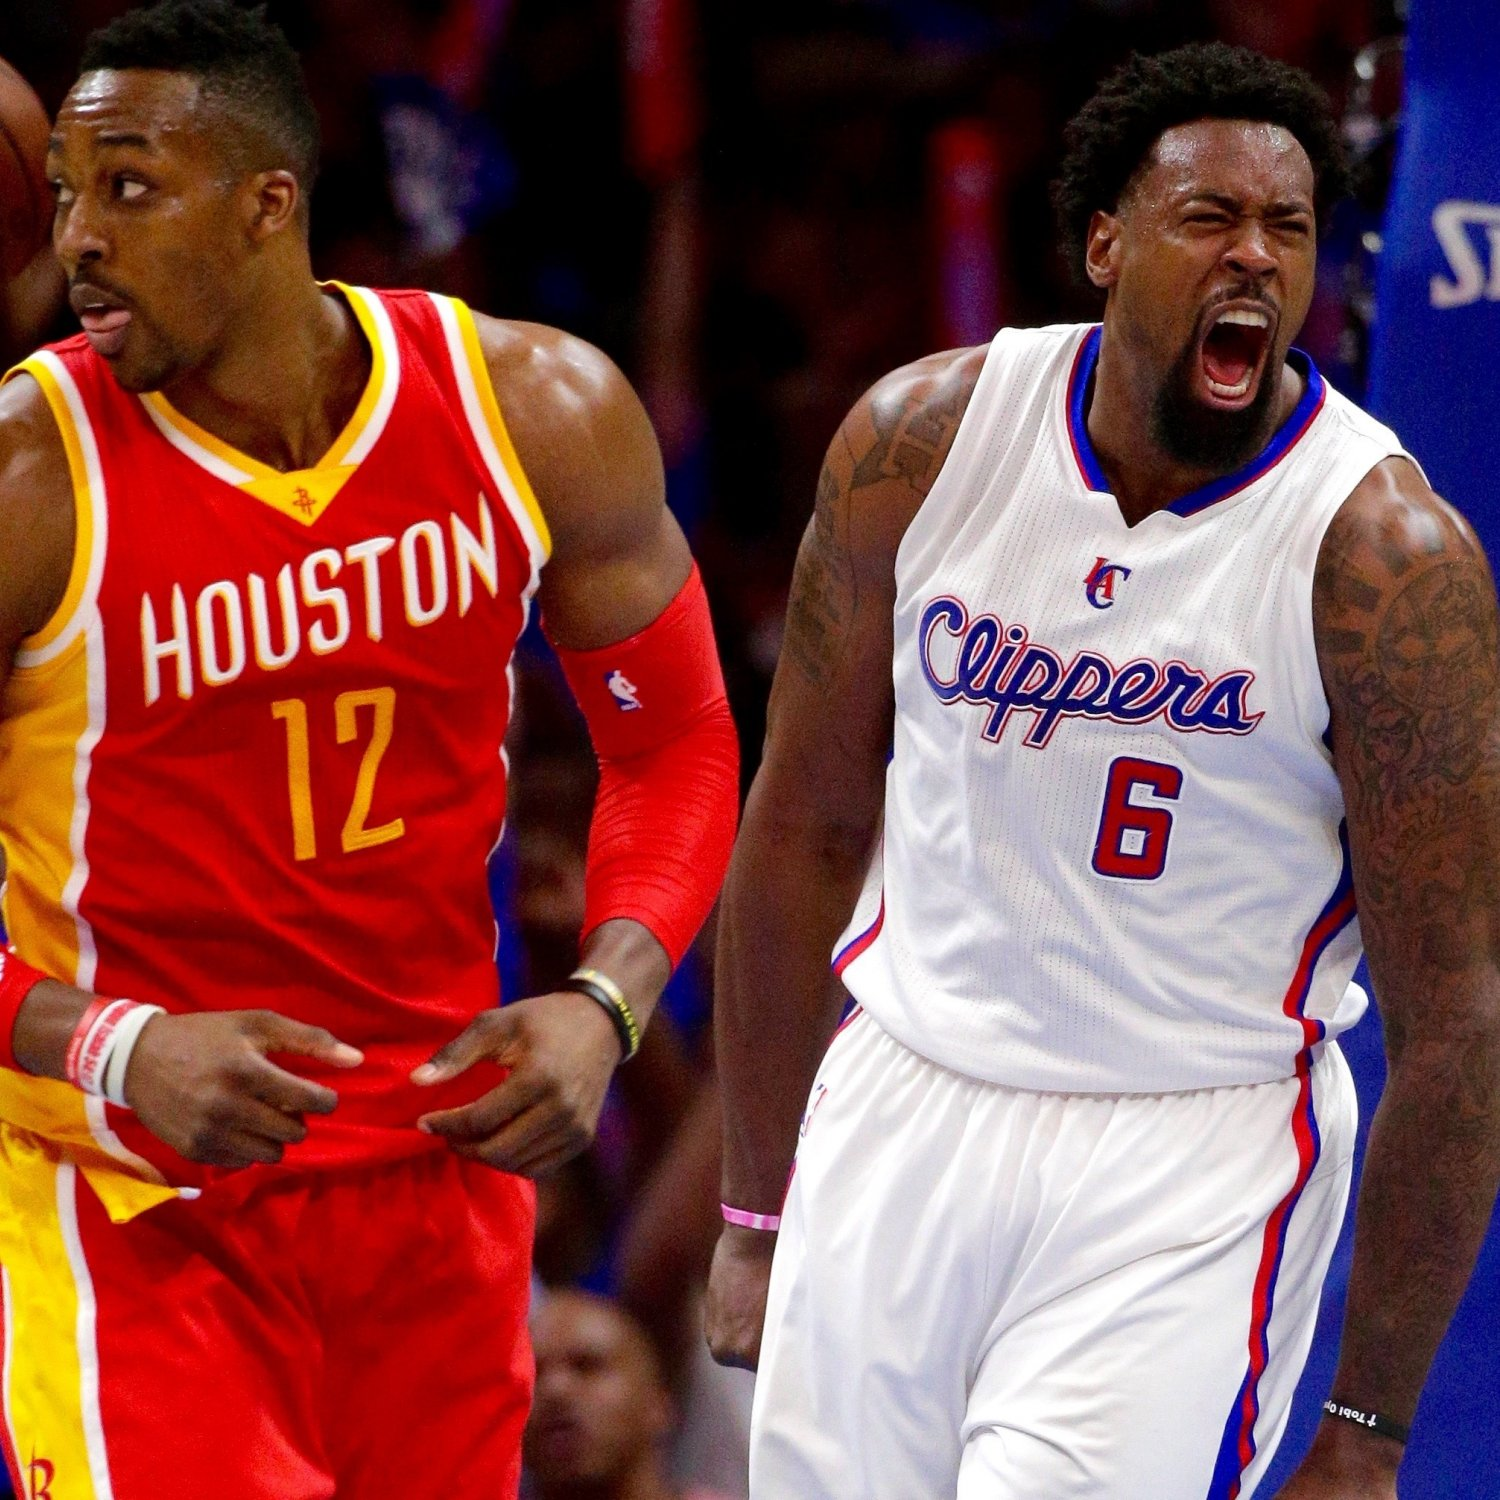 Rockets Vs Warriors Twitter Reaction: Rockets Vs. Clippers: Game 4 Score And Twitter Reaction